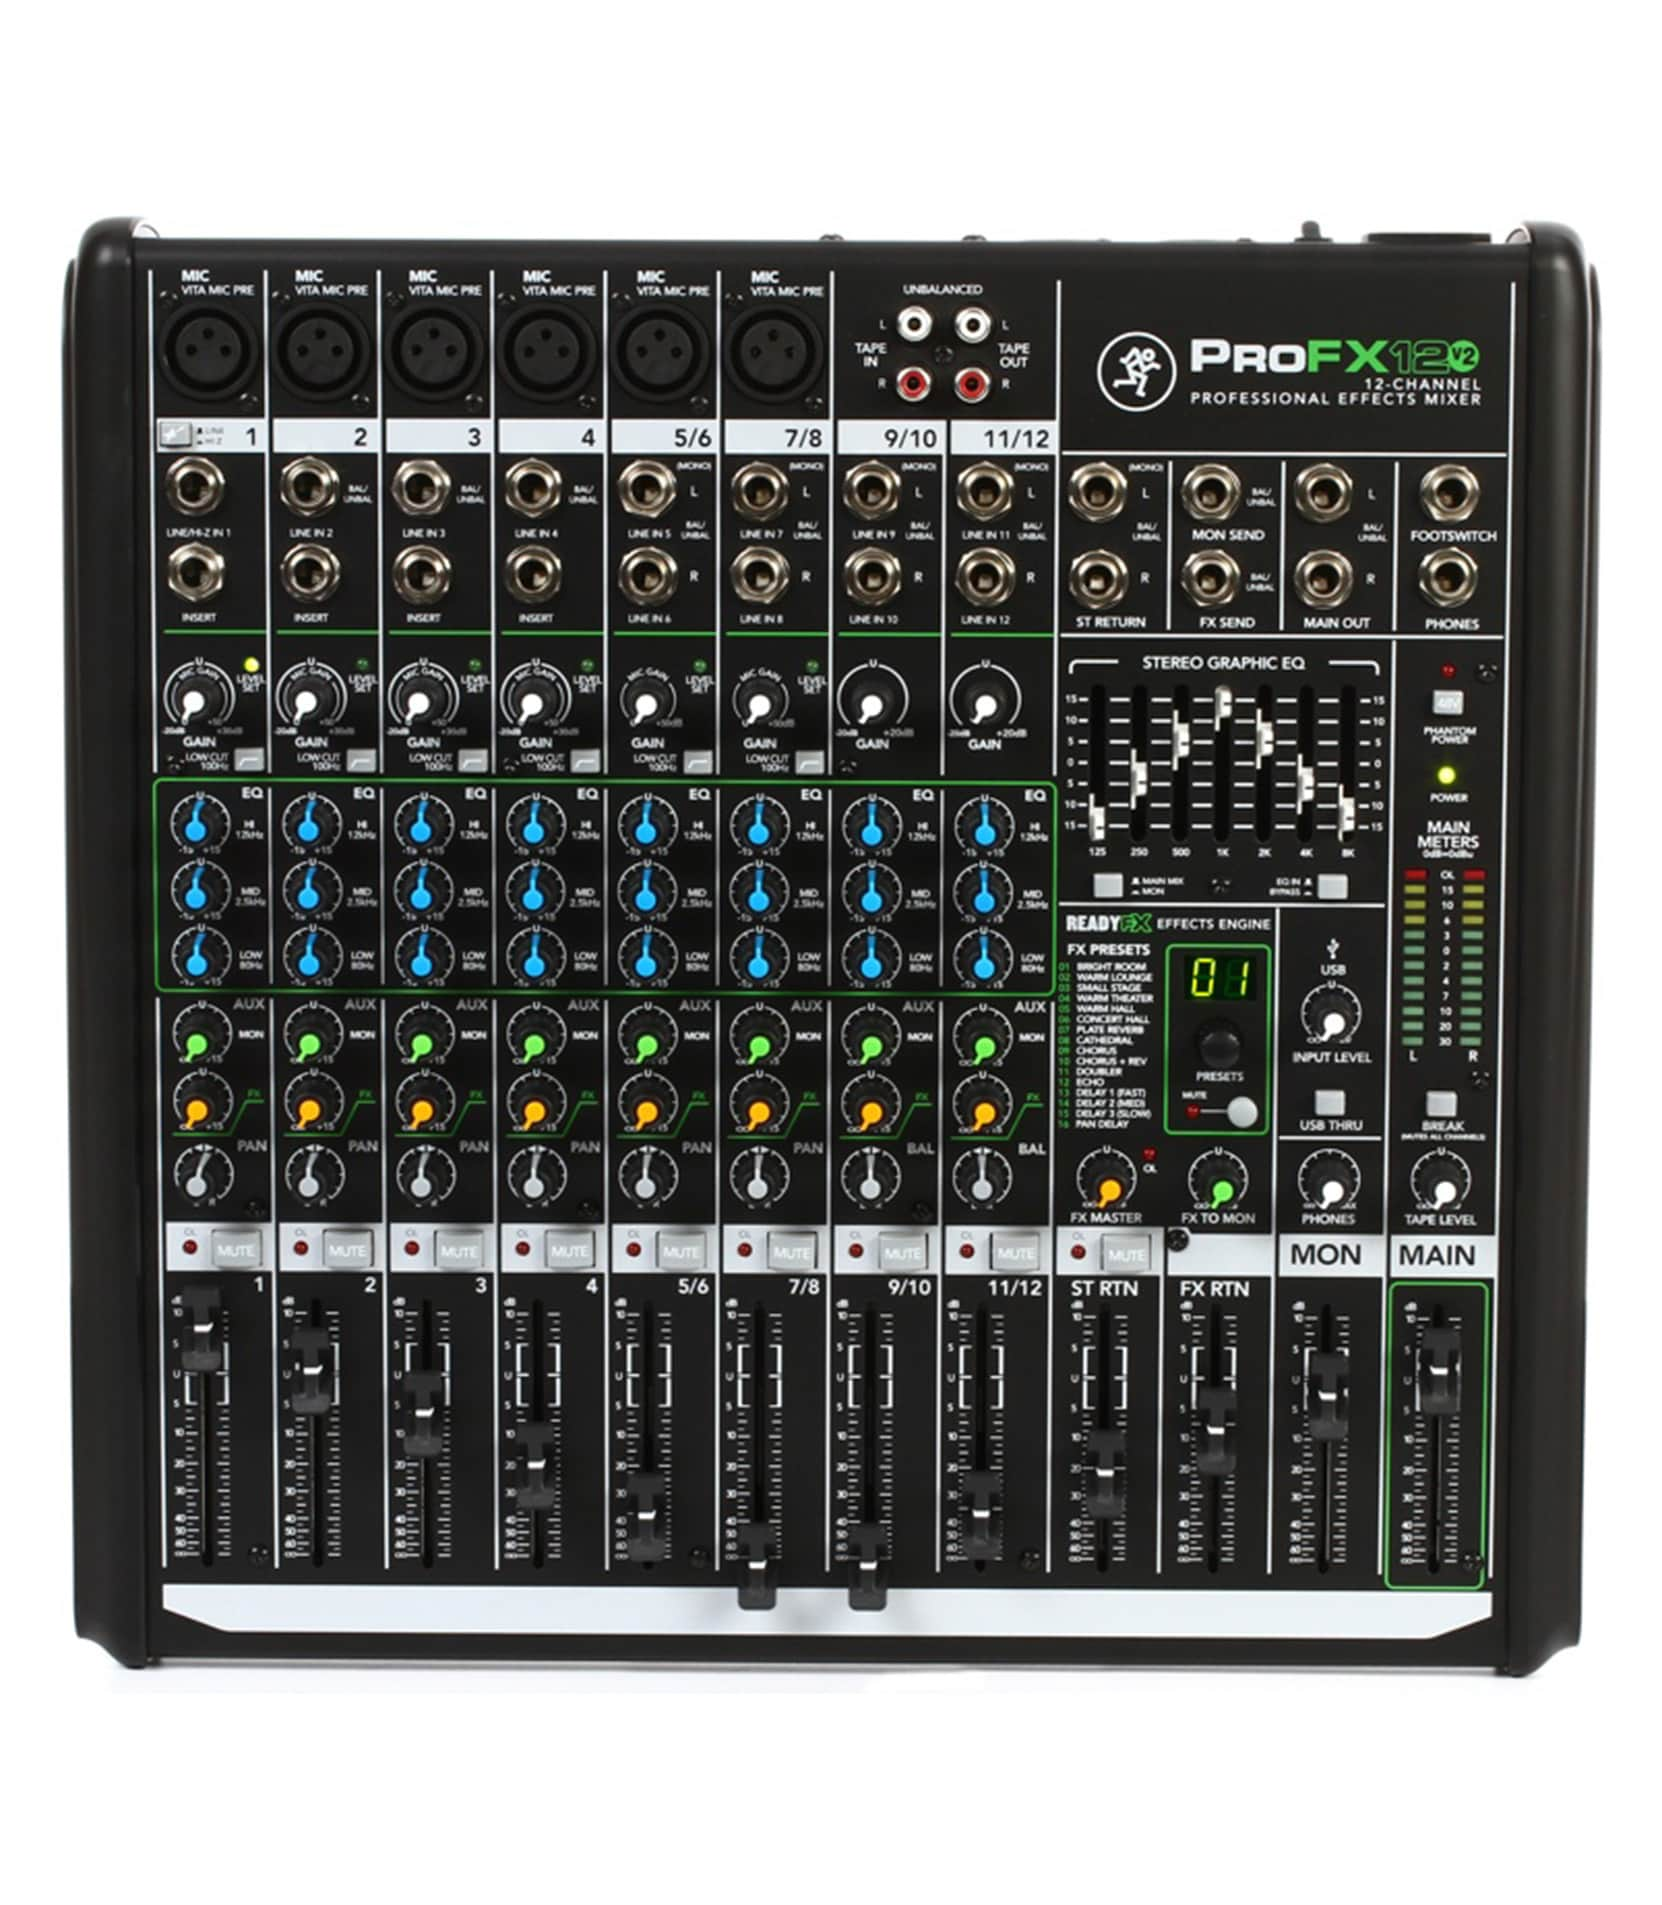 ProFX12v2 UK 12channel Professional Effects Mixer